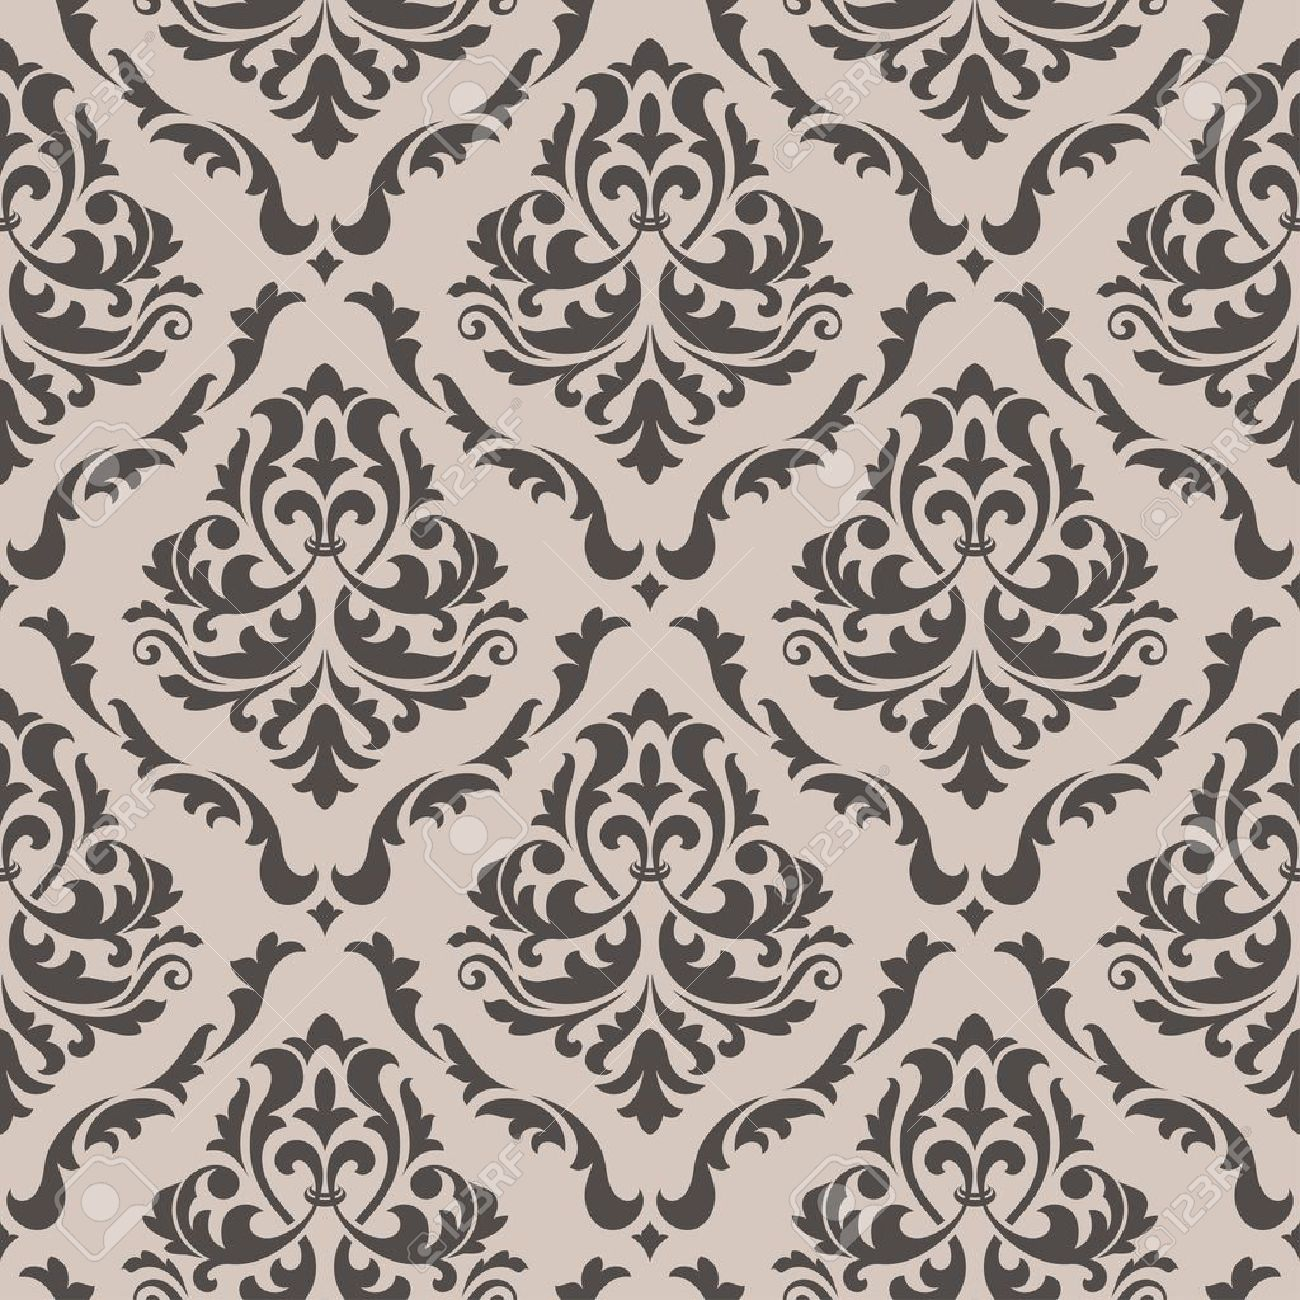 Victorian Design seamless floral pattern for background design in victorian style